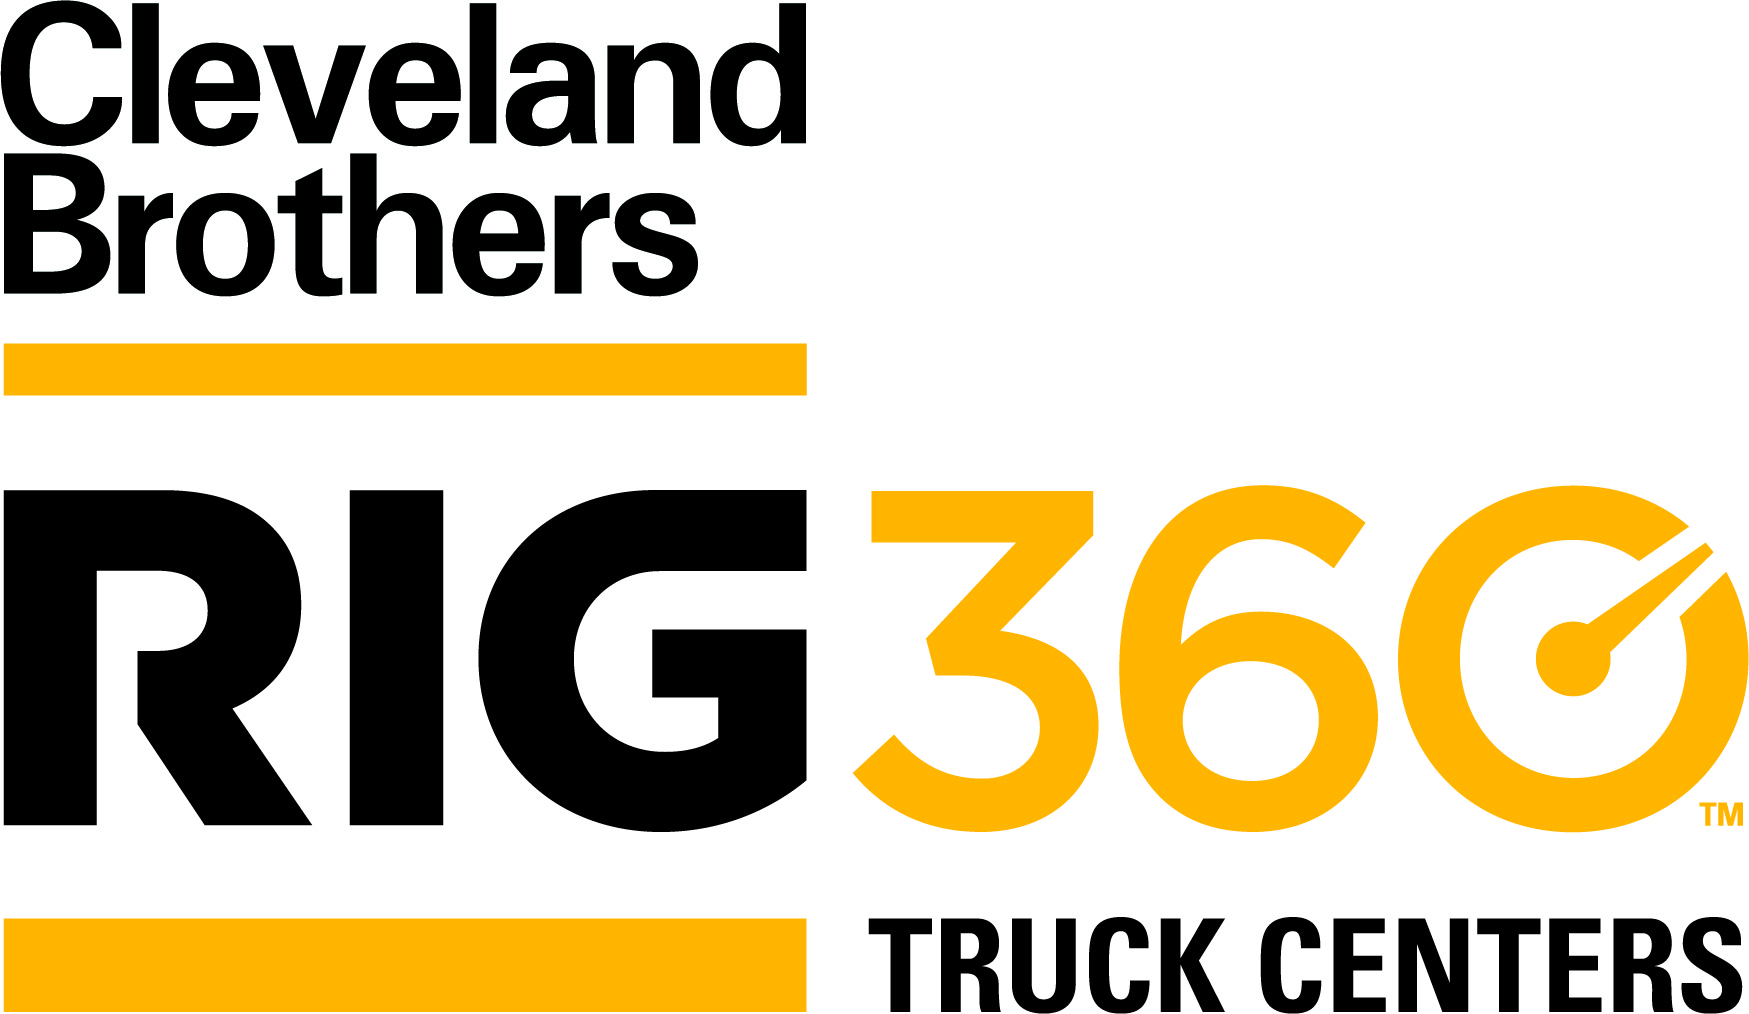 Cleveland Brothers RIG360 Truck Centers in Lancaster, Pa.